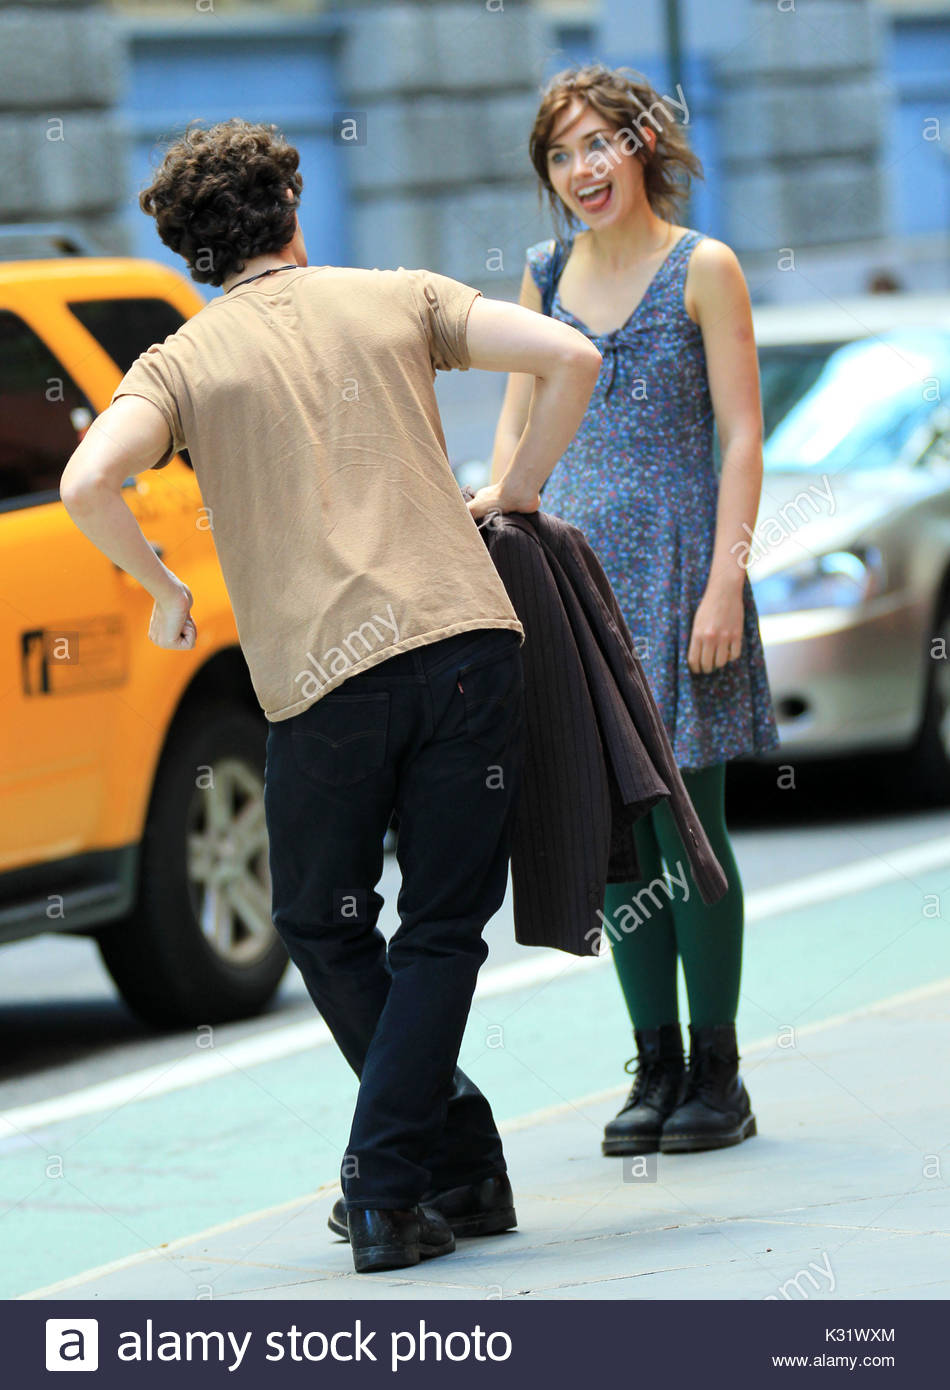 Penn badgley and imogen poots first shots of penn badgley filming first shots of penn badgley filming his new movie greetings from tim buckley with imogen poots in brooklyn ny per imdb greetings from tim buckley m4hsunfo